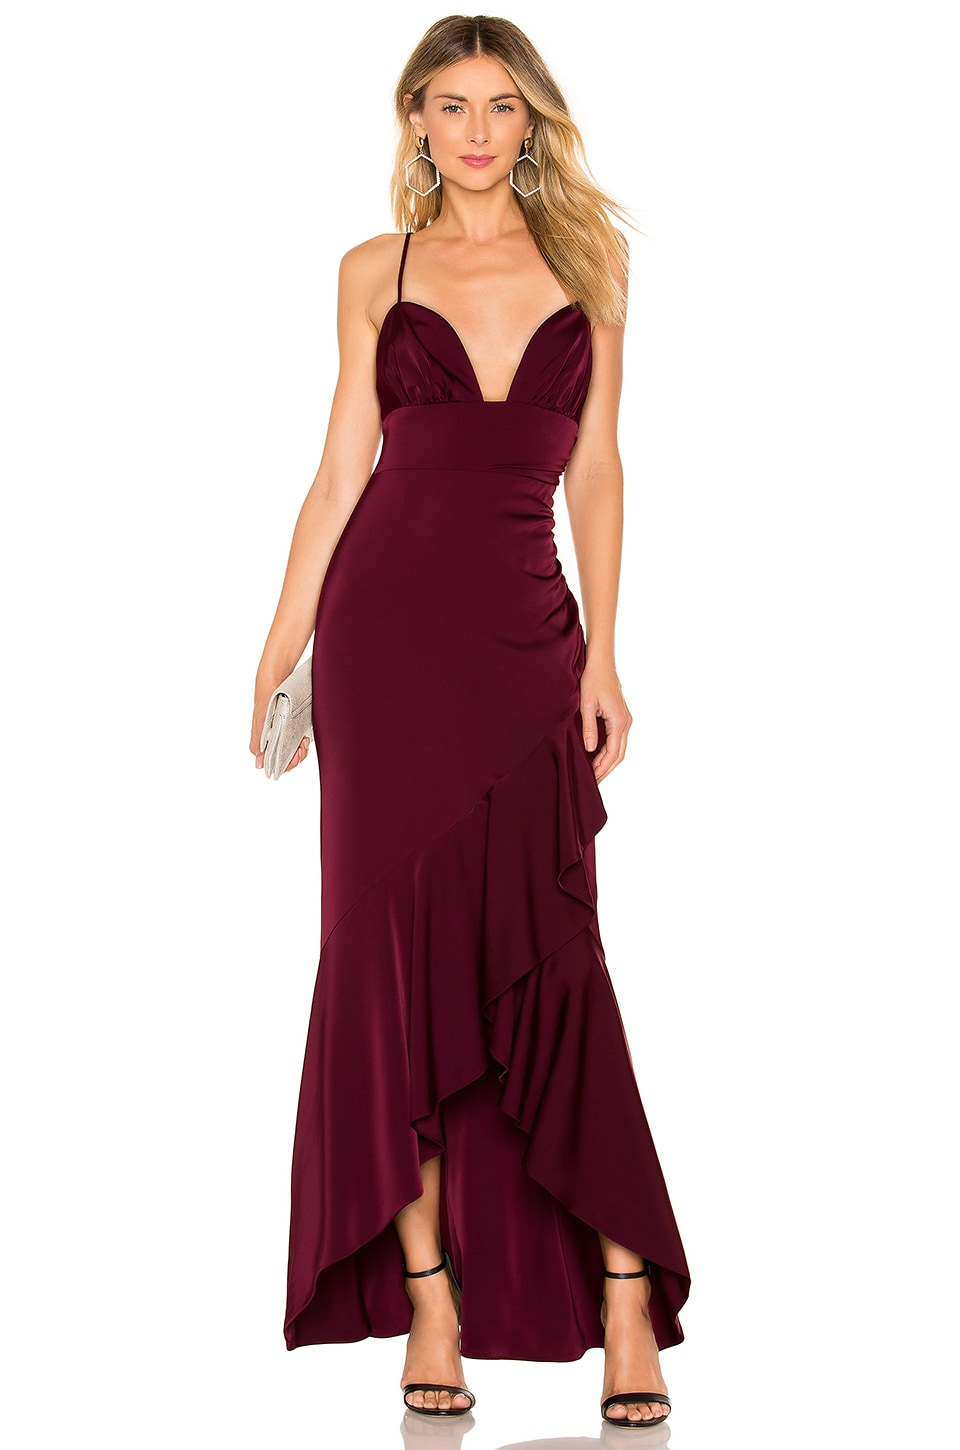 MAJORELLE Sangria Gown in Ruby